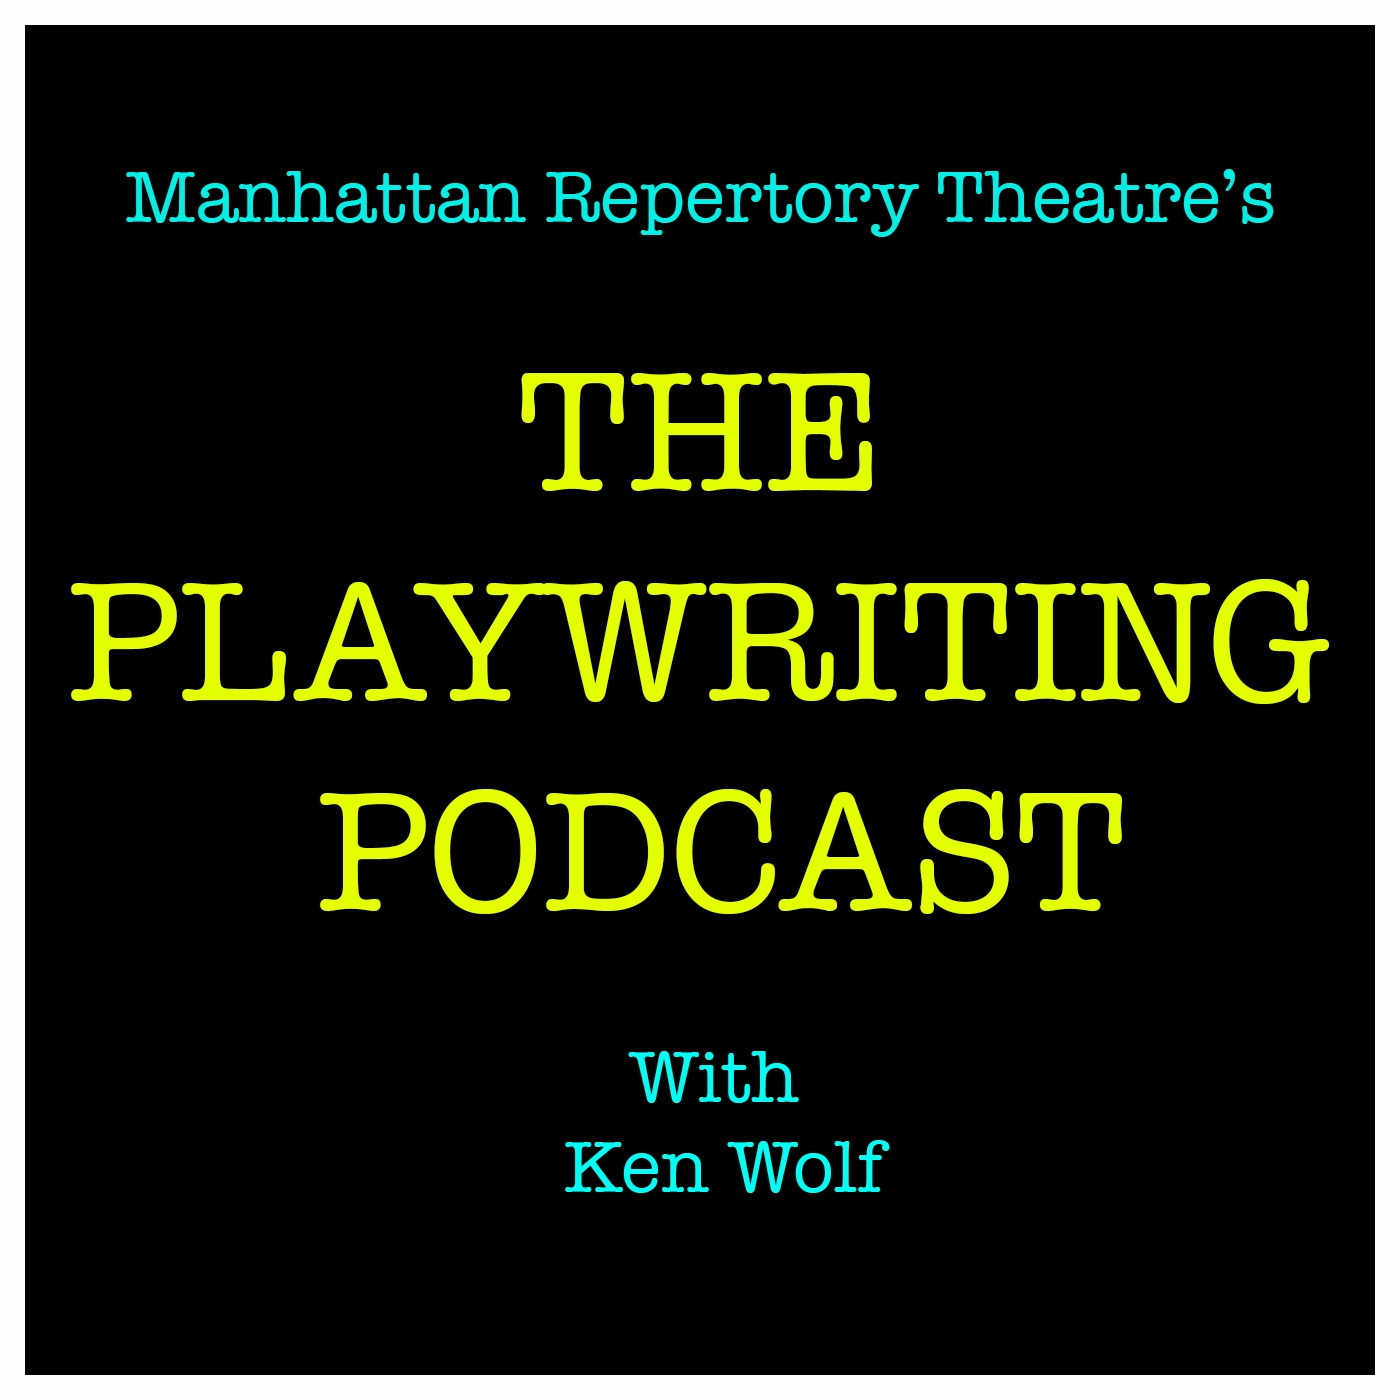 THE PLAYWRITING PODCAST.jpg